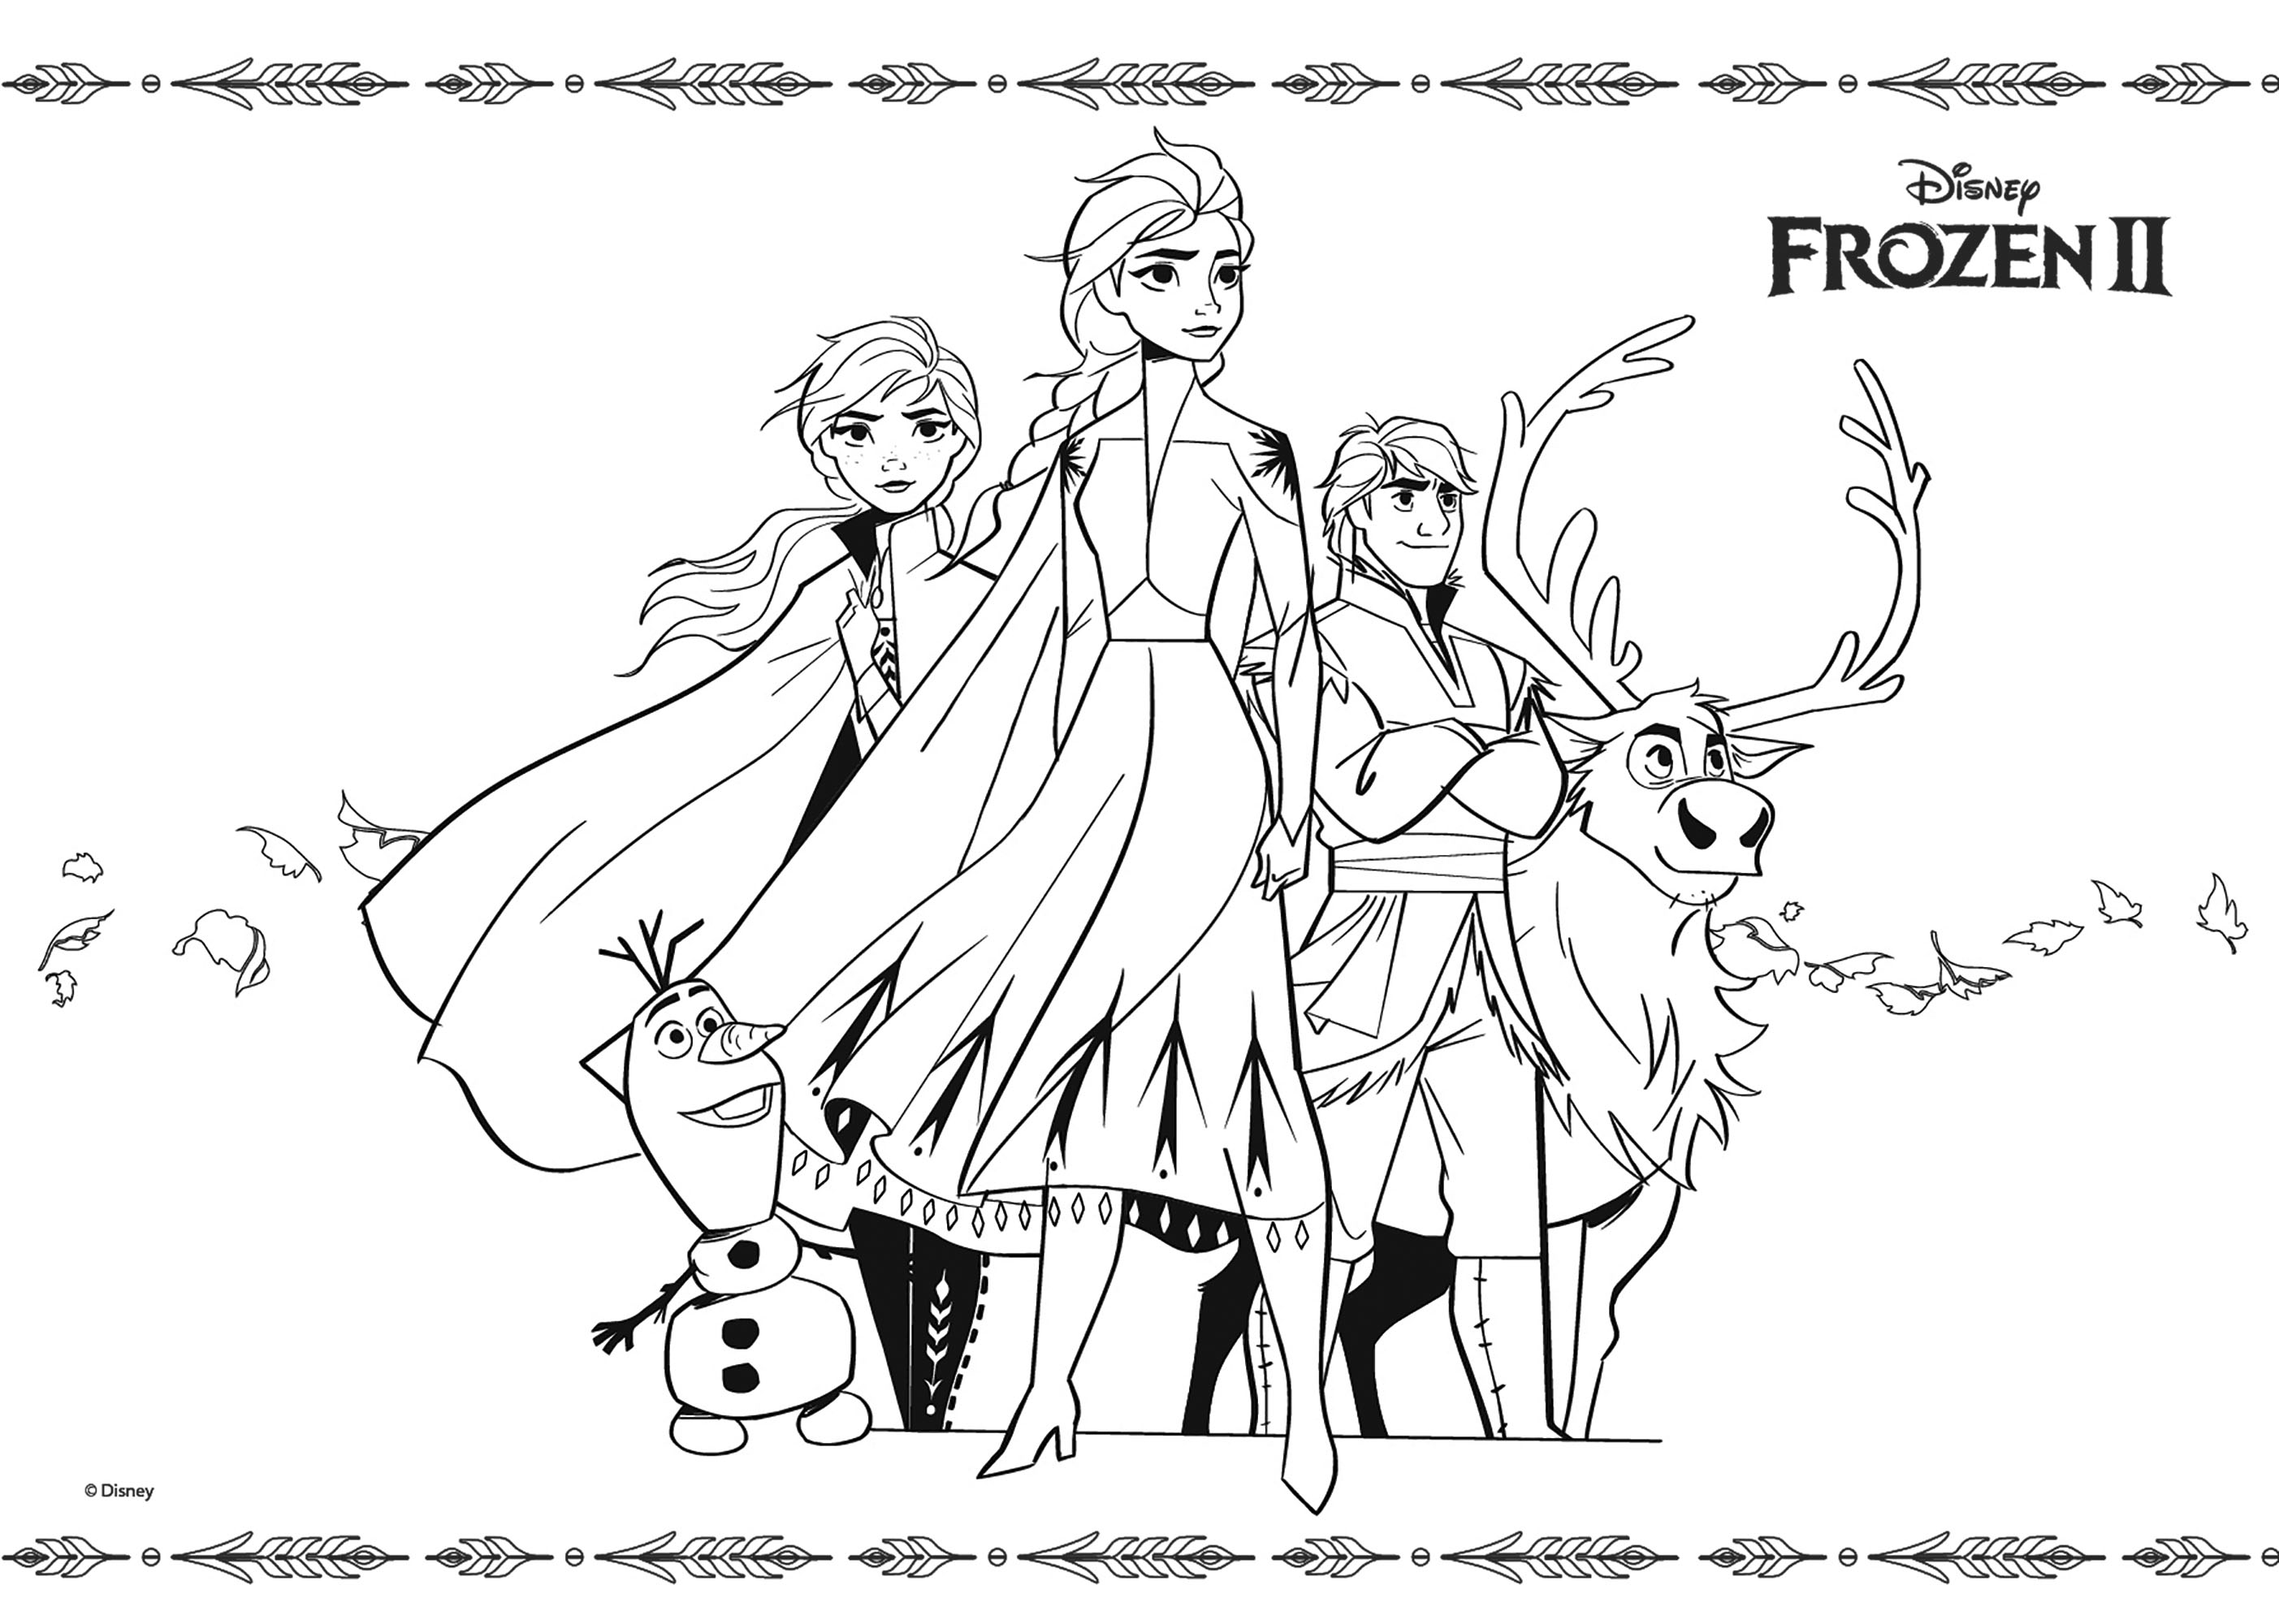 frozen drawings to color frozen 2 to color for children frozen 2 kids coloring pages frozen color drawings to